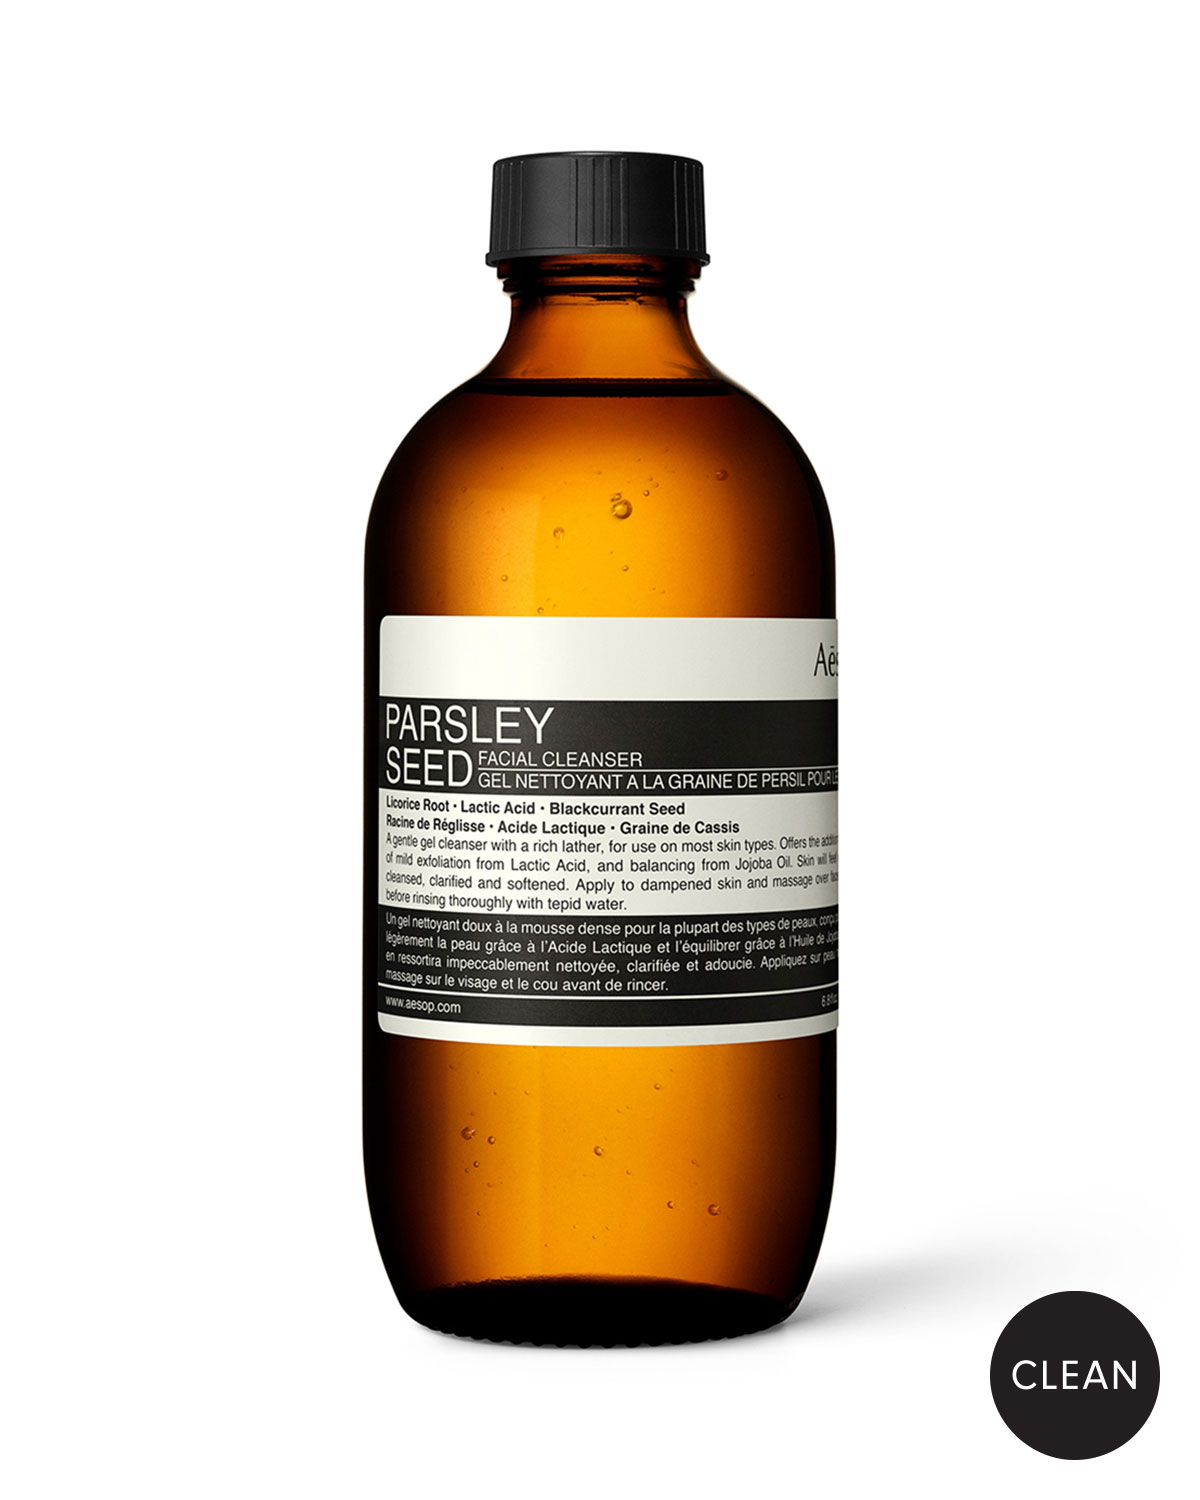 Aesop 6.7 oz. Parsley Seed Face Cleanser